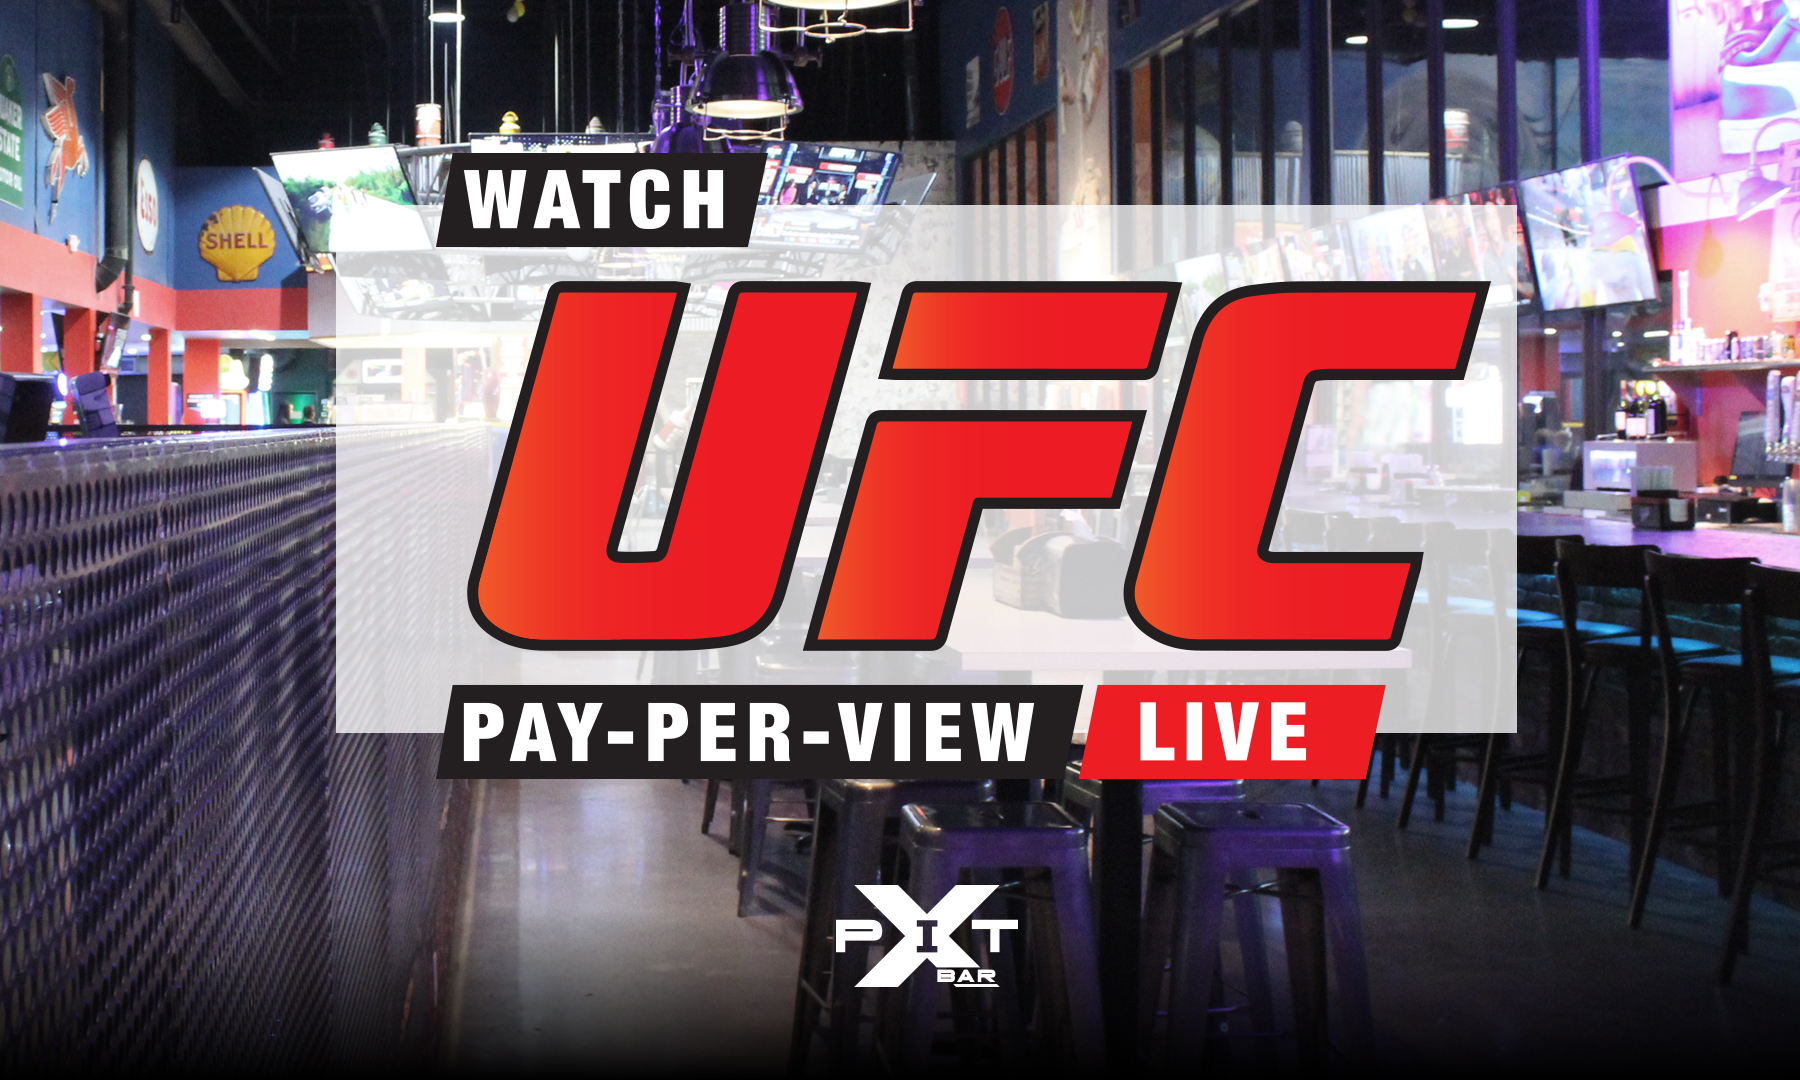 featuring live pay per view UFC watch parties